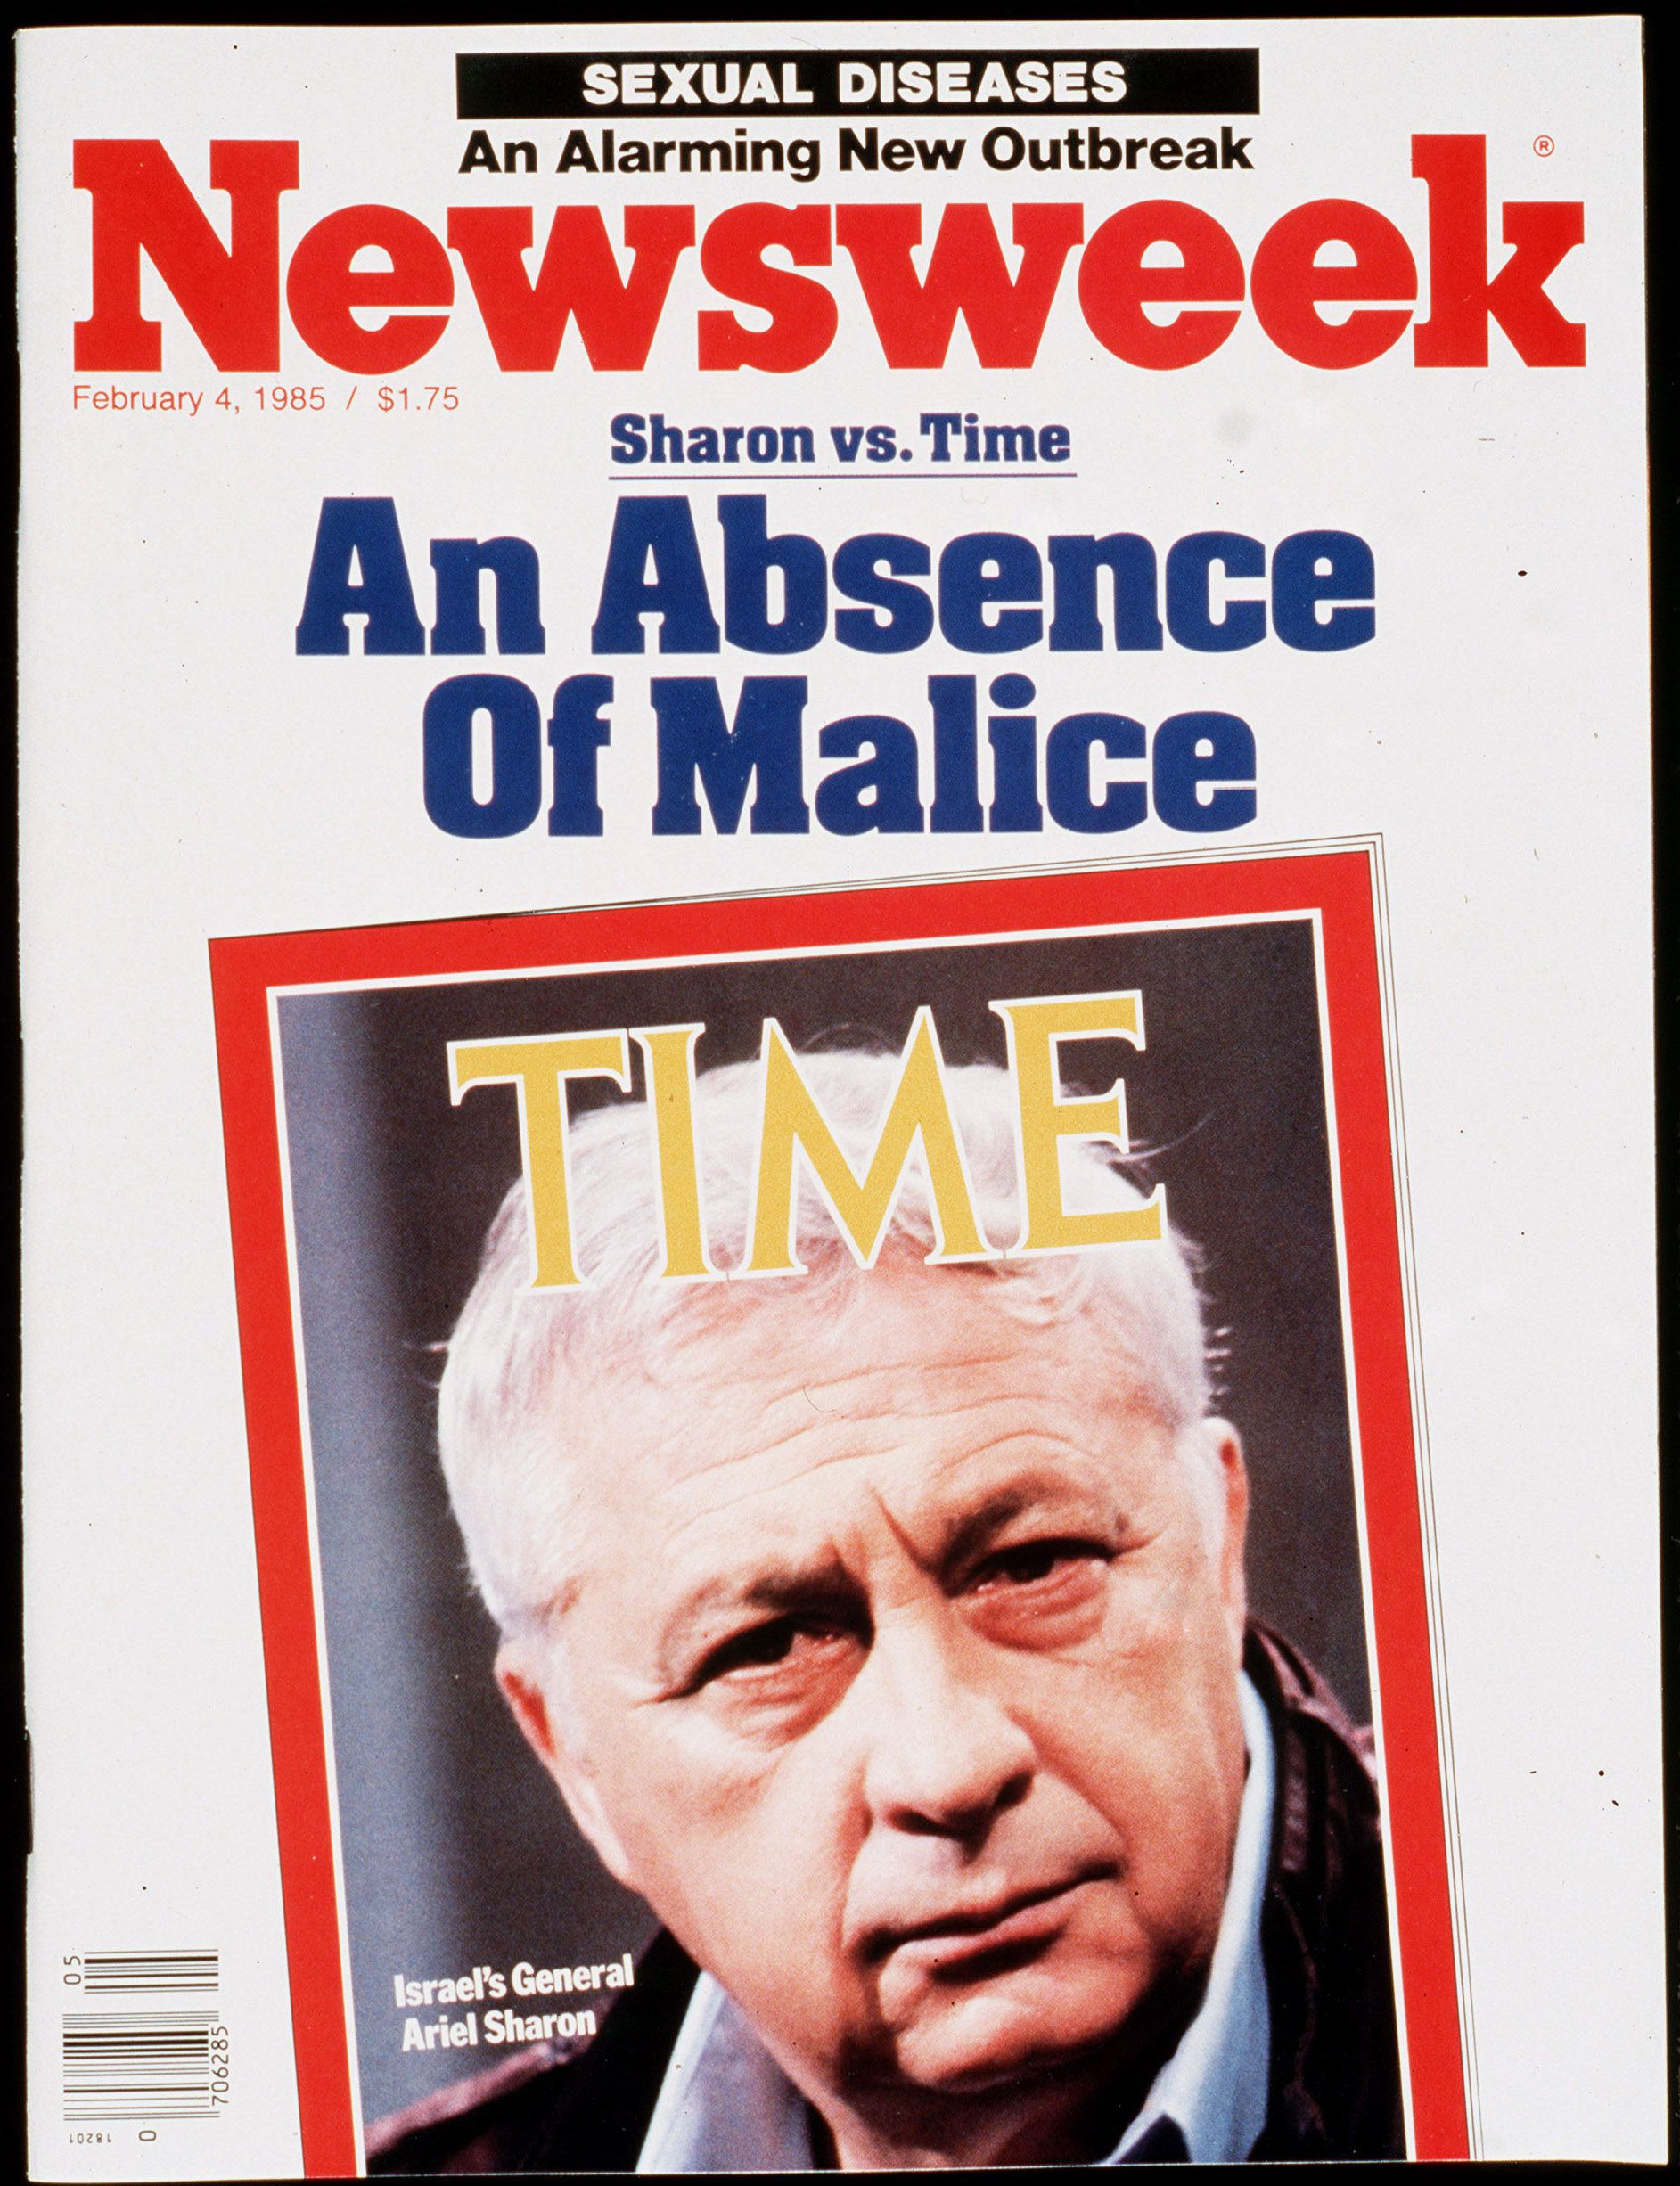 Time, Newsweek - September 11, 2001 Magazine Collection